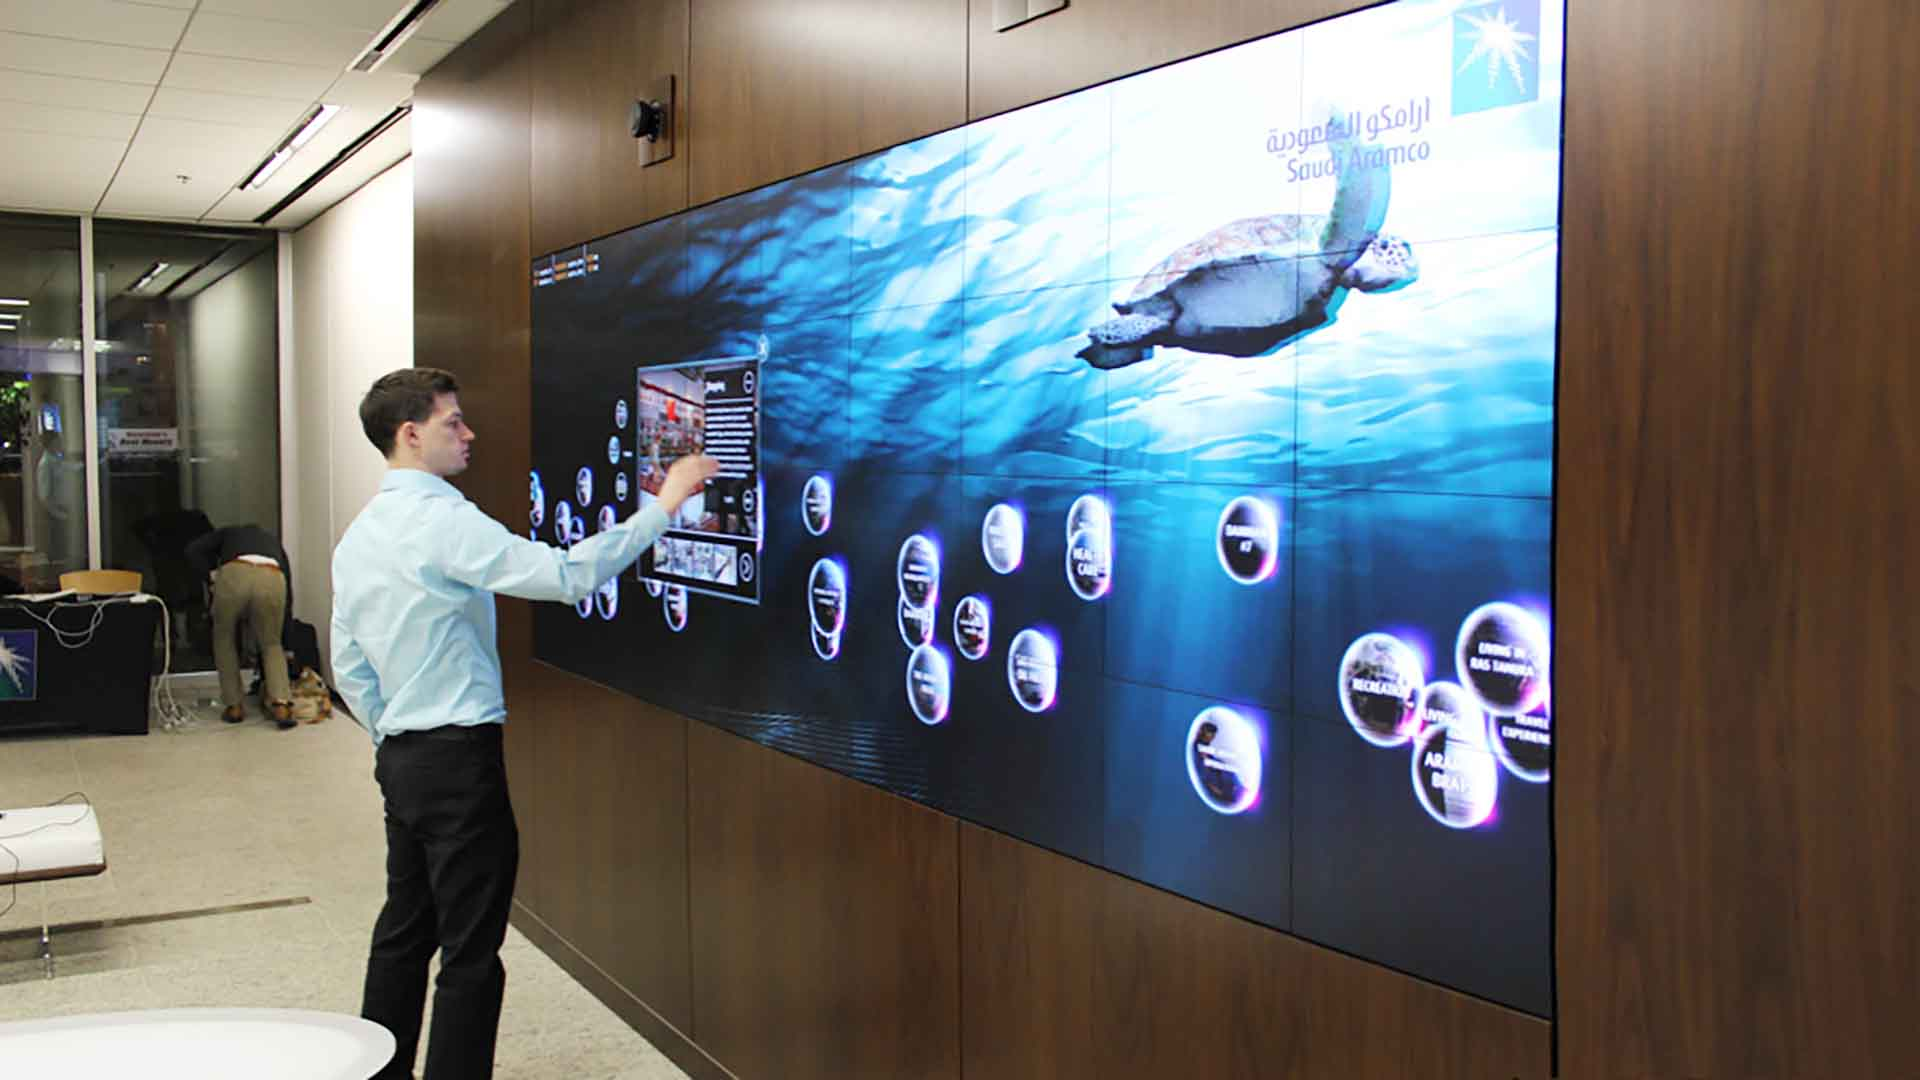 Detail view of client interacting with media screen and its content management system